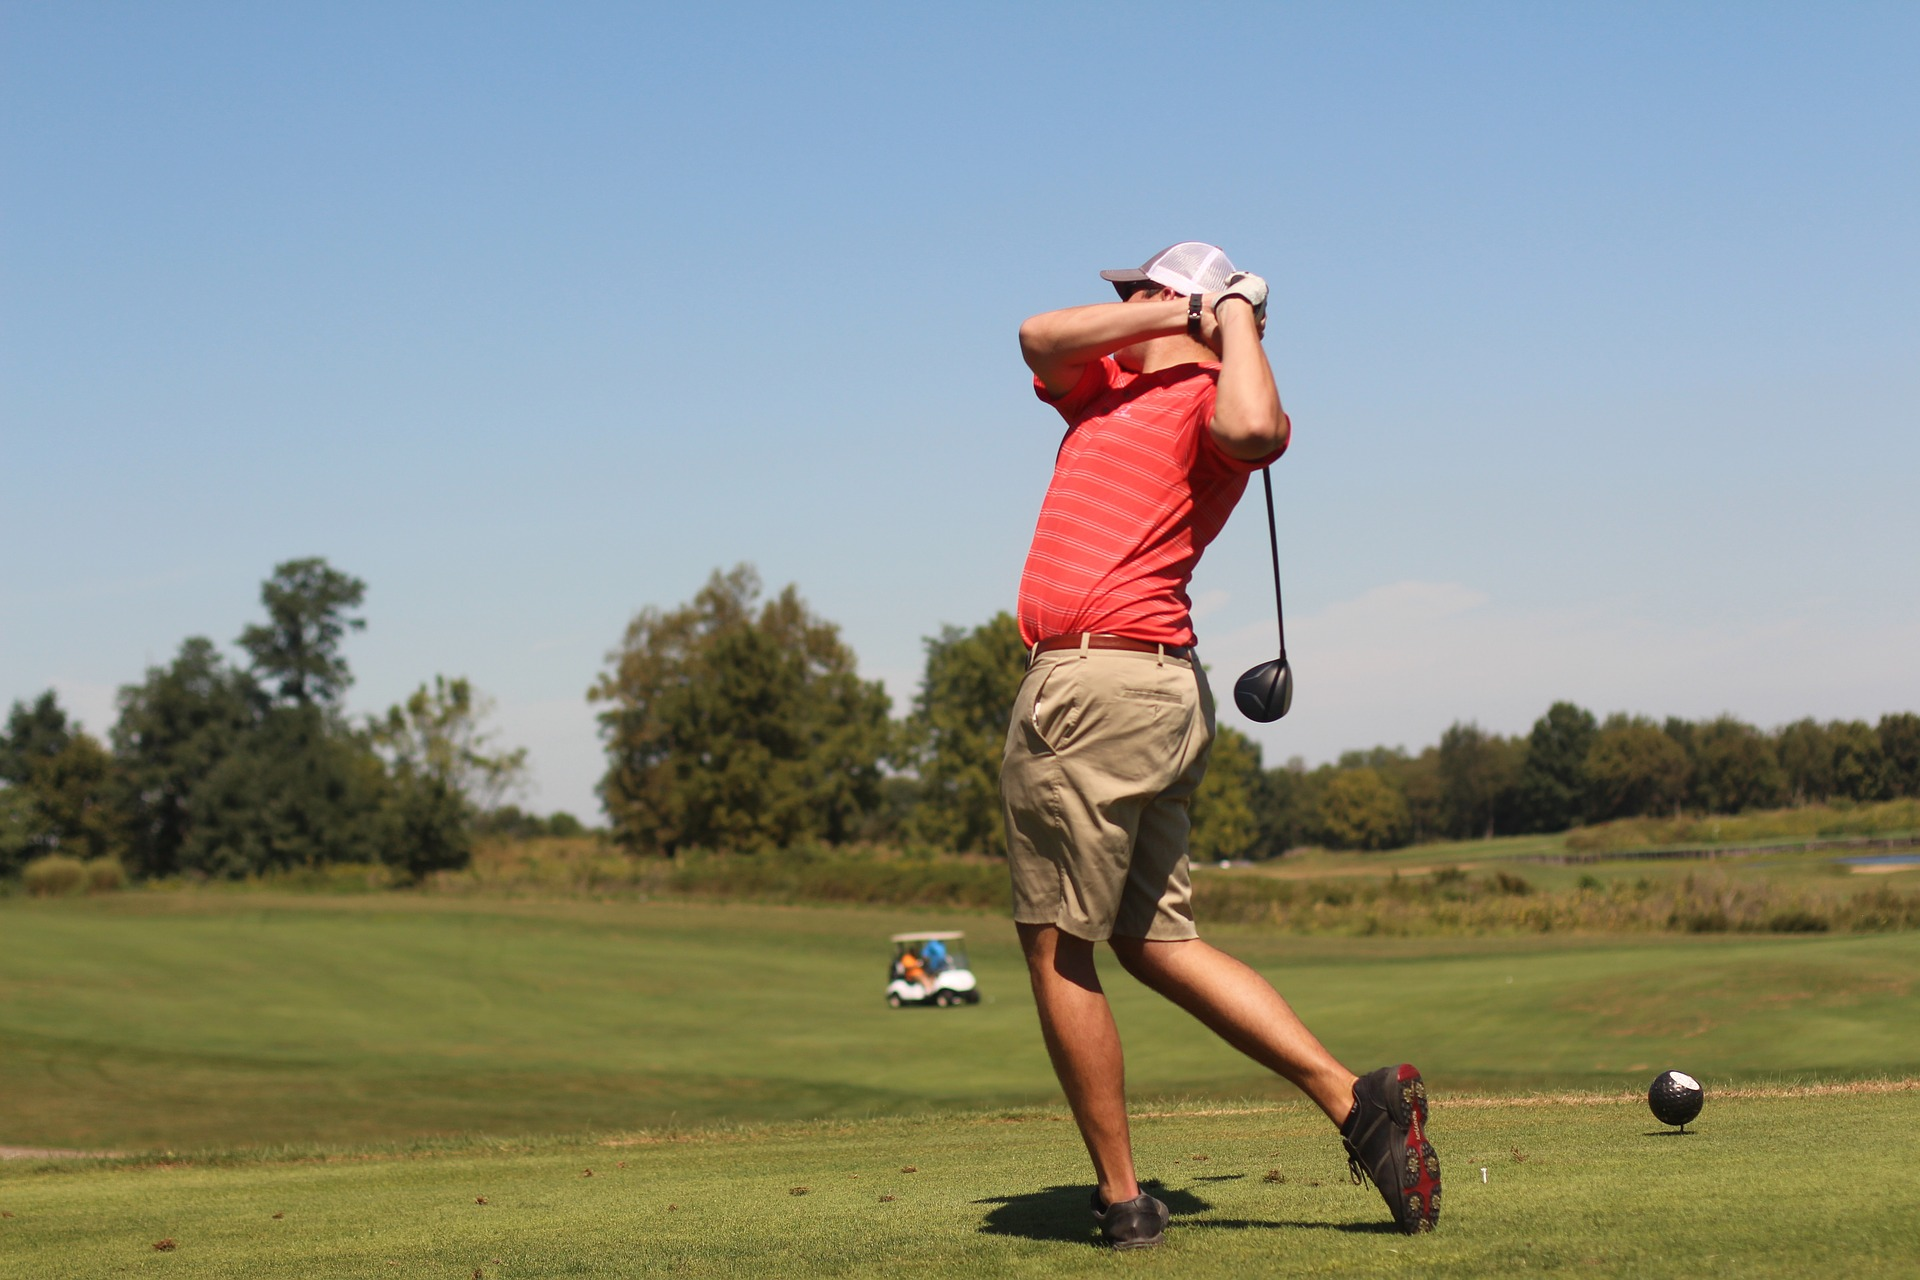 Beginner's Guide: What You Should Wear For Golfing